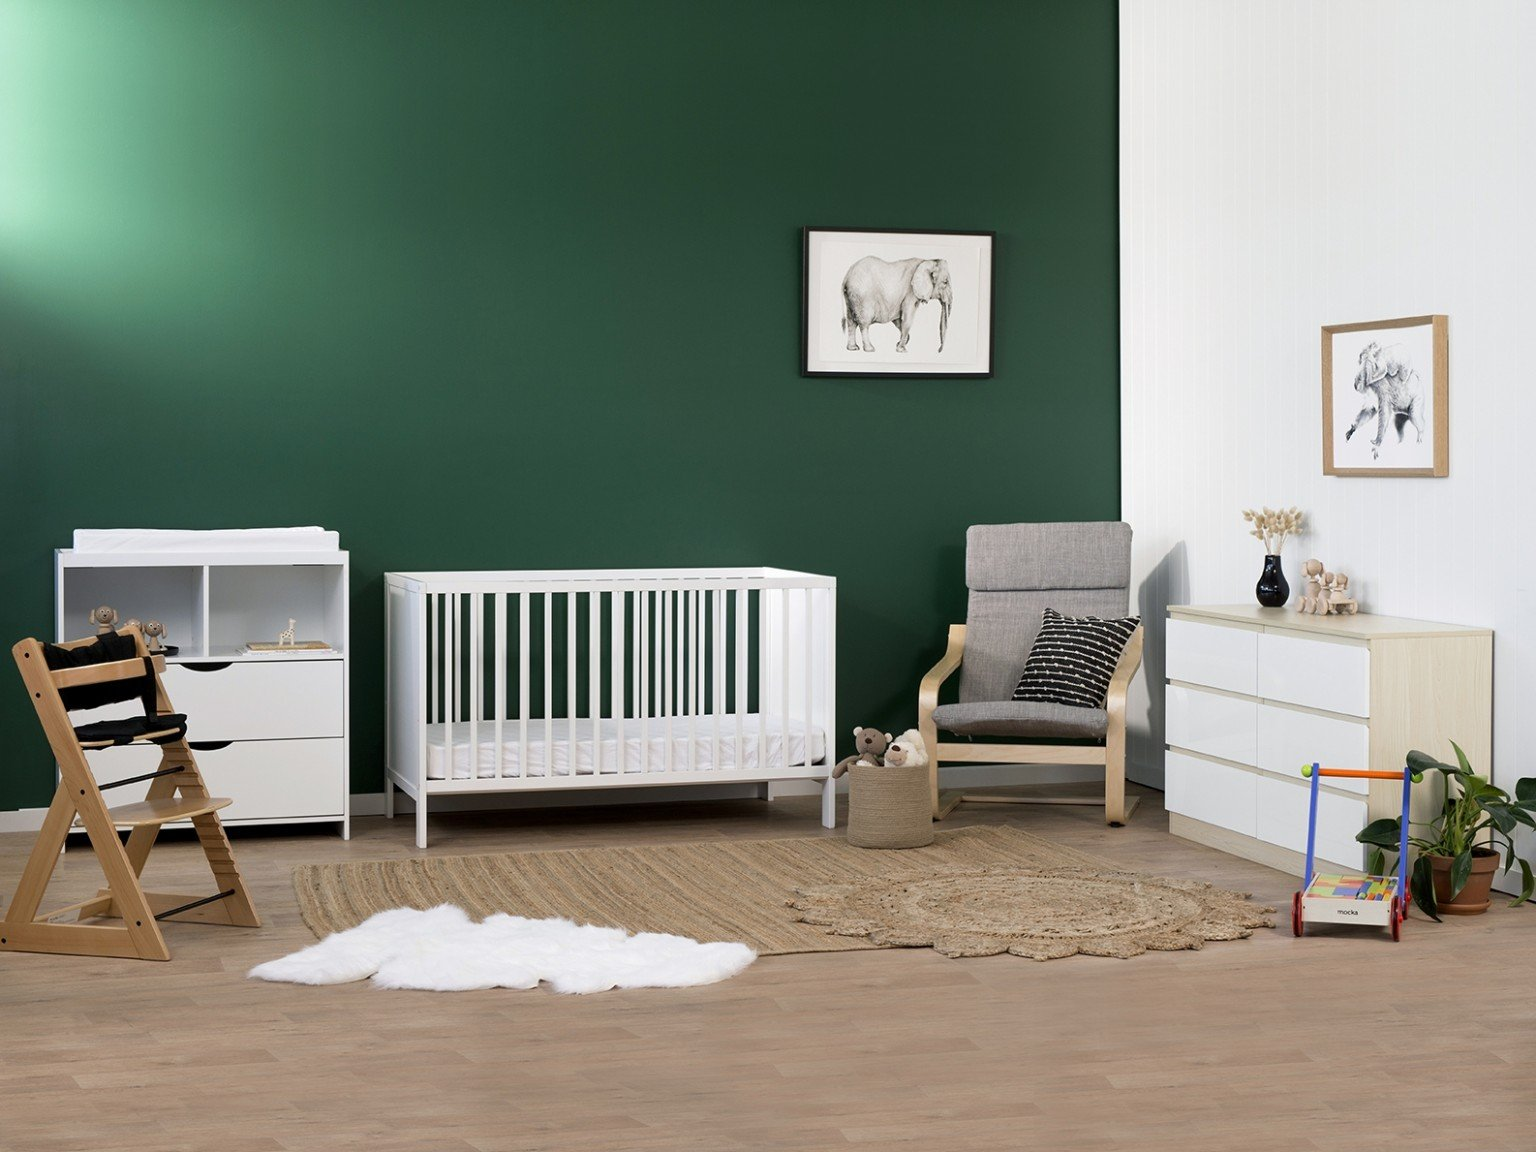 baby room with white cot and change table